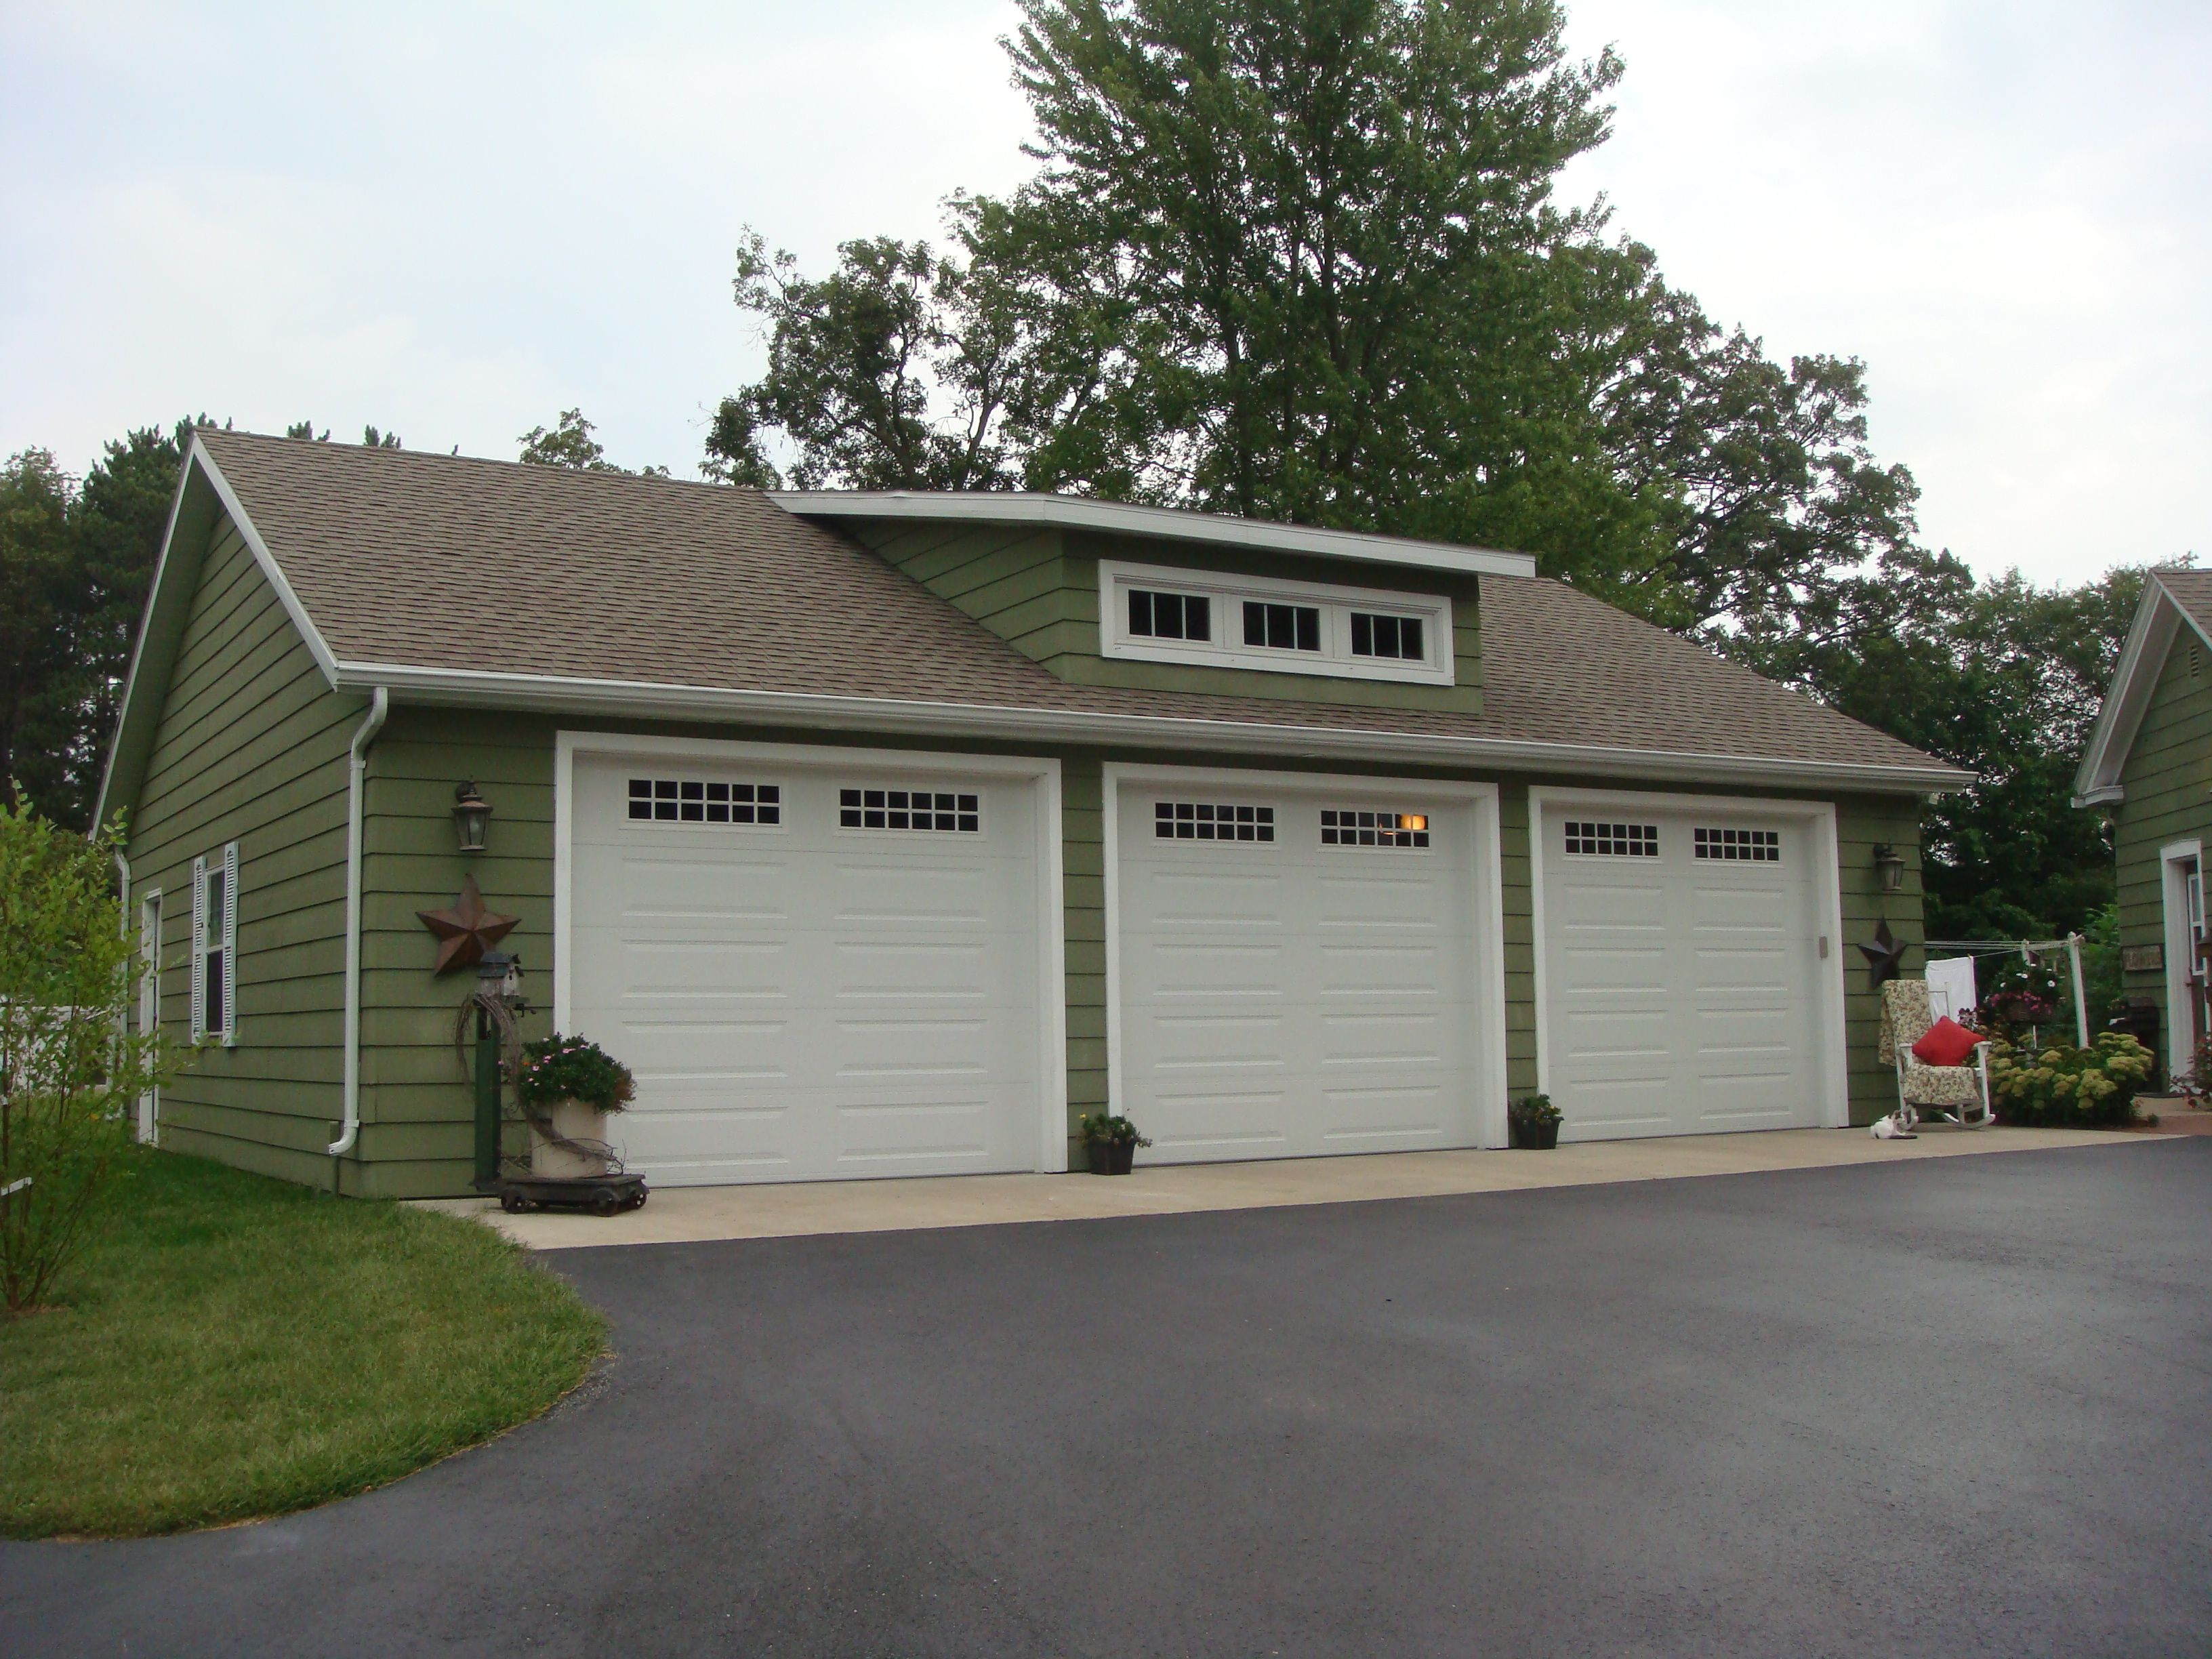 3 Car With Carport Detached Garage Pictures Car Garage W: apartment carports